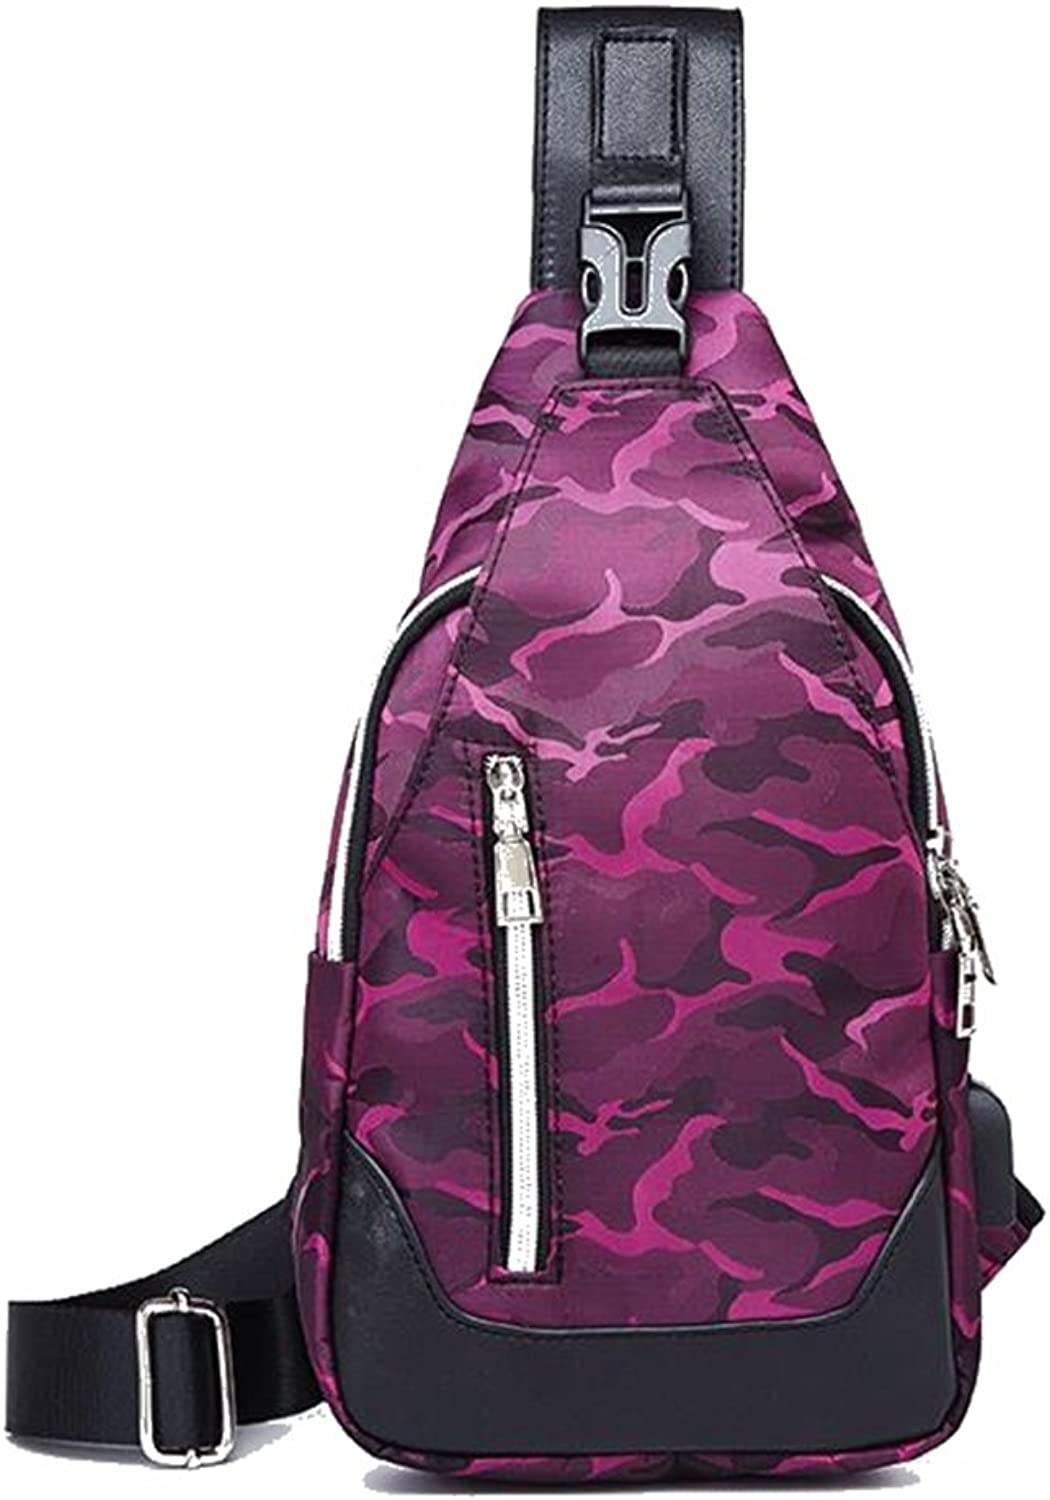 Professional Bag Sling Bag, Camo Chest Pack Crossbody Casual Lightweight with USB Charging Port Shoulder Bag for Men Women Travel Outdoors Boys Girls. Outdoor Travel Essentials (color   Camo pink)